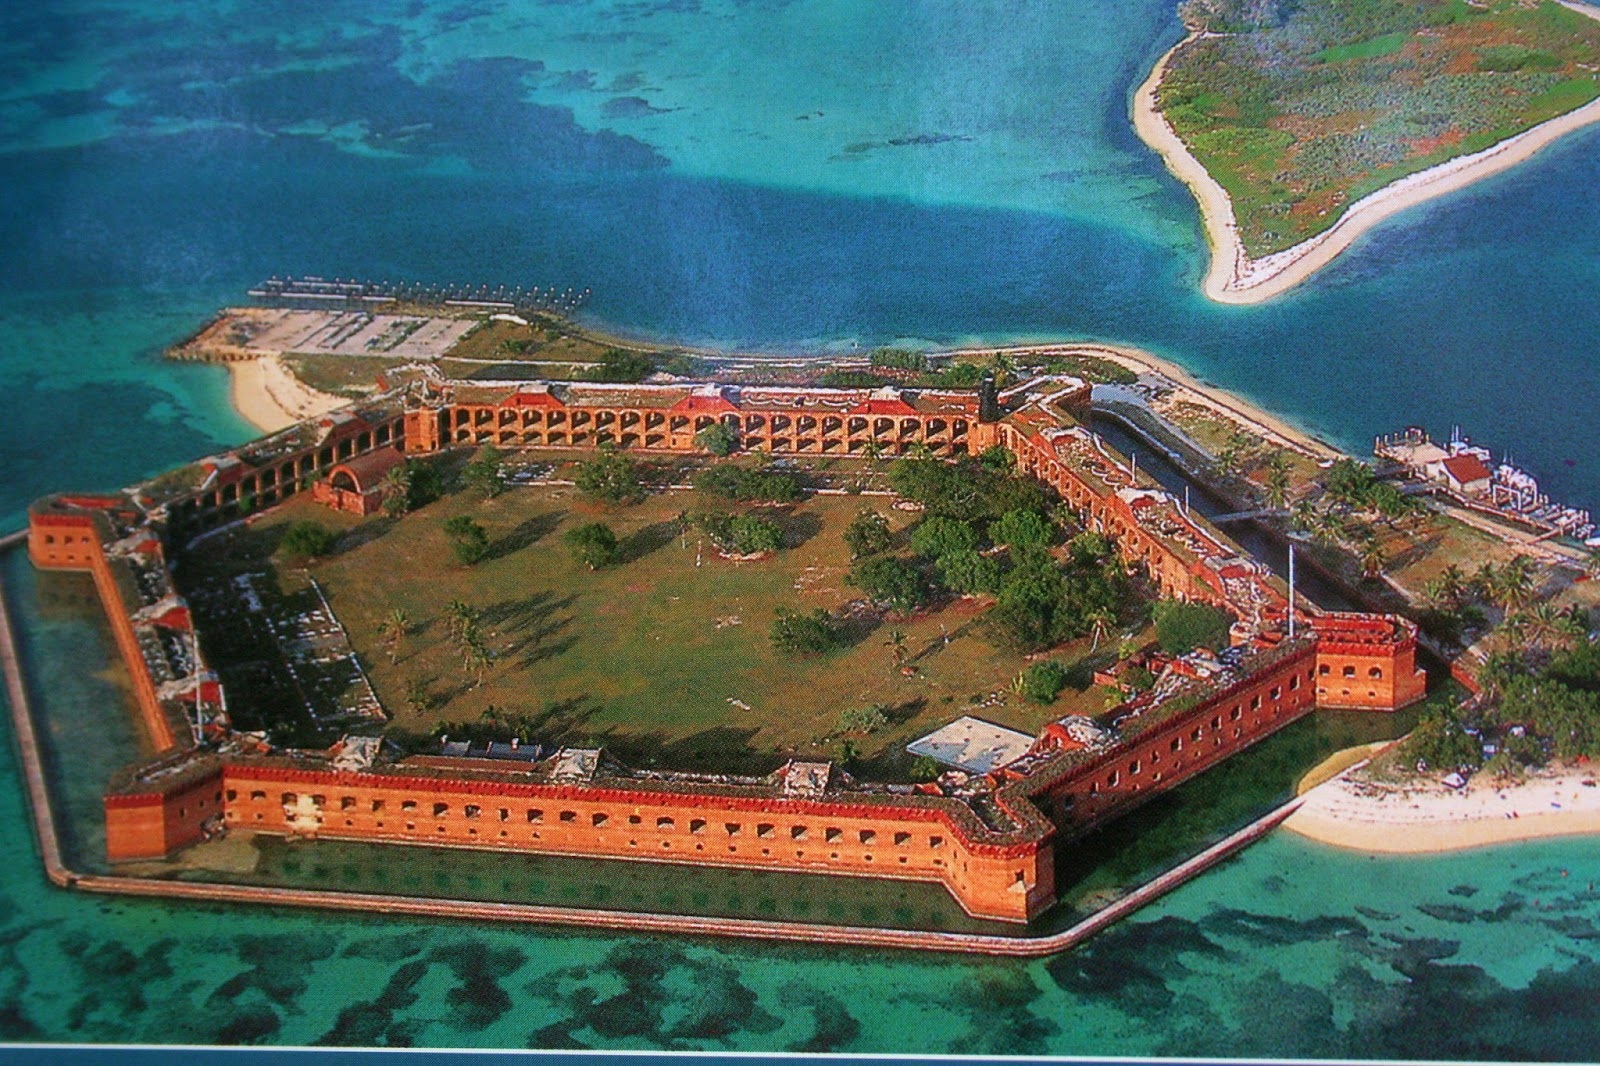 2011 A Space Odd Essay A Day At Dry Tortugas National Park